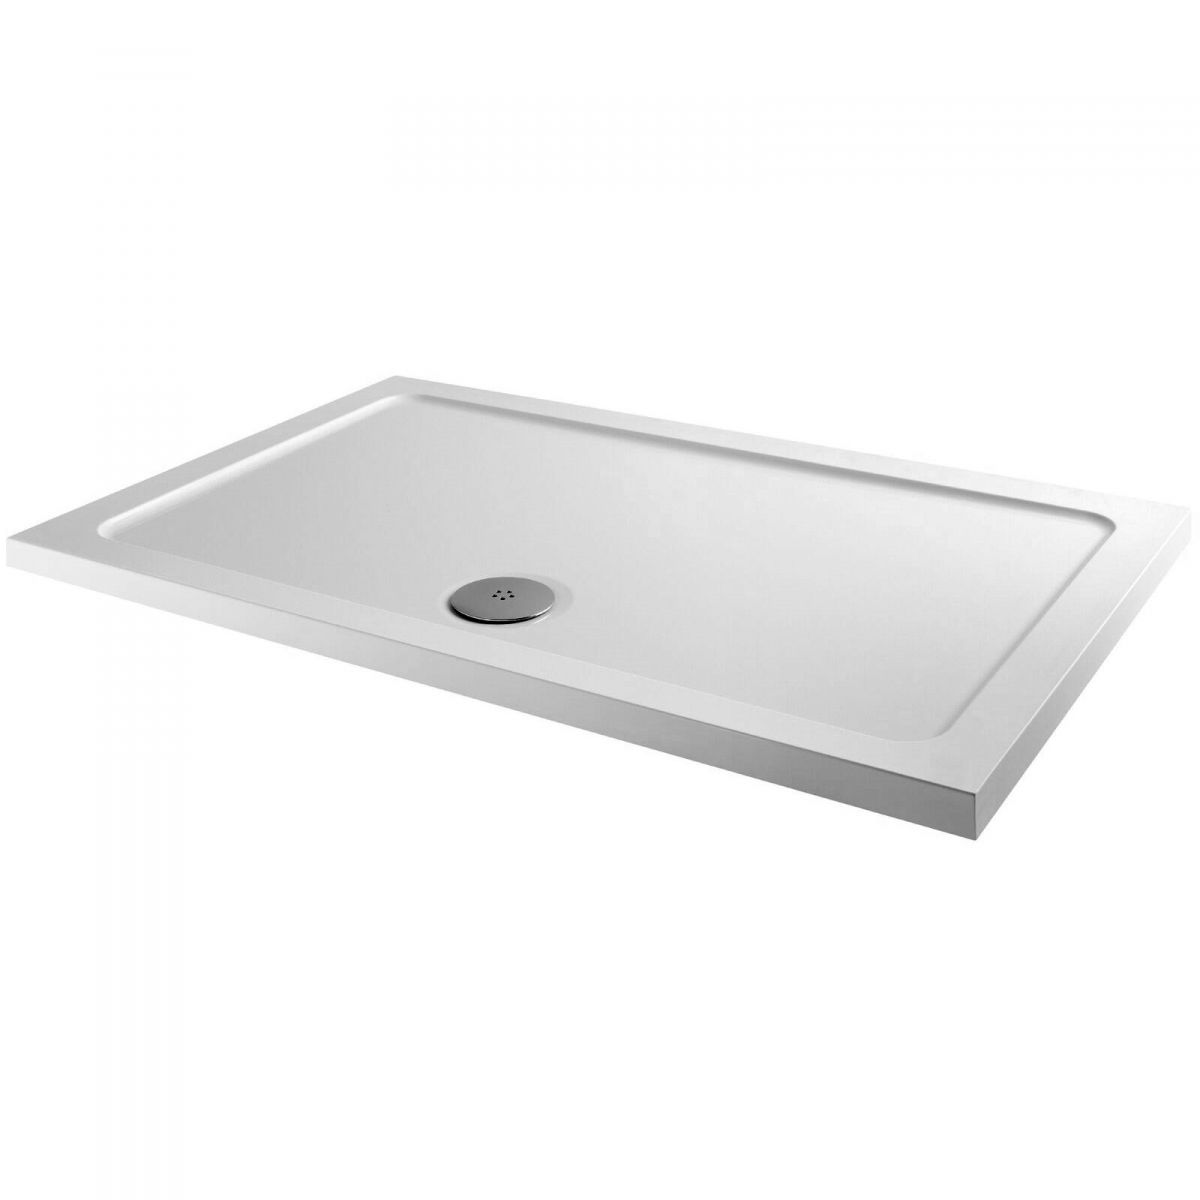 The MX Elements Rectangular Shower Tray with Waste